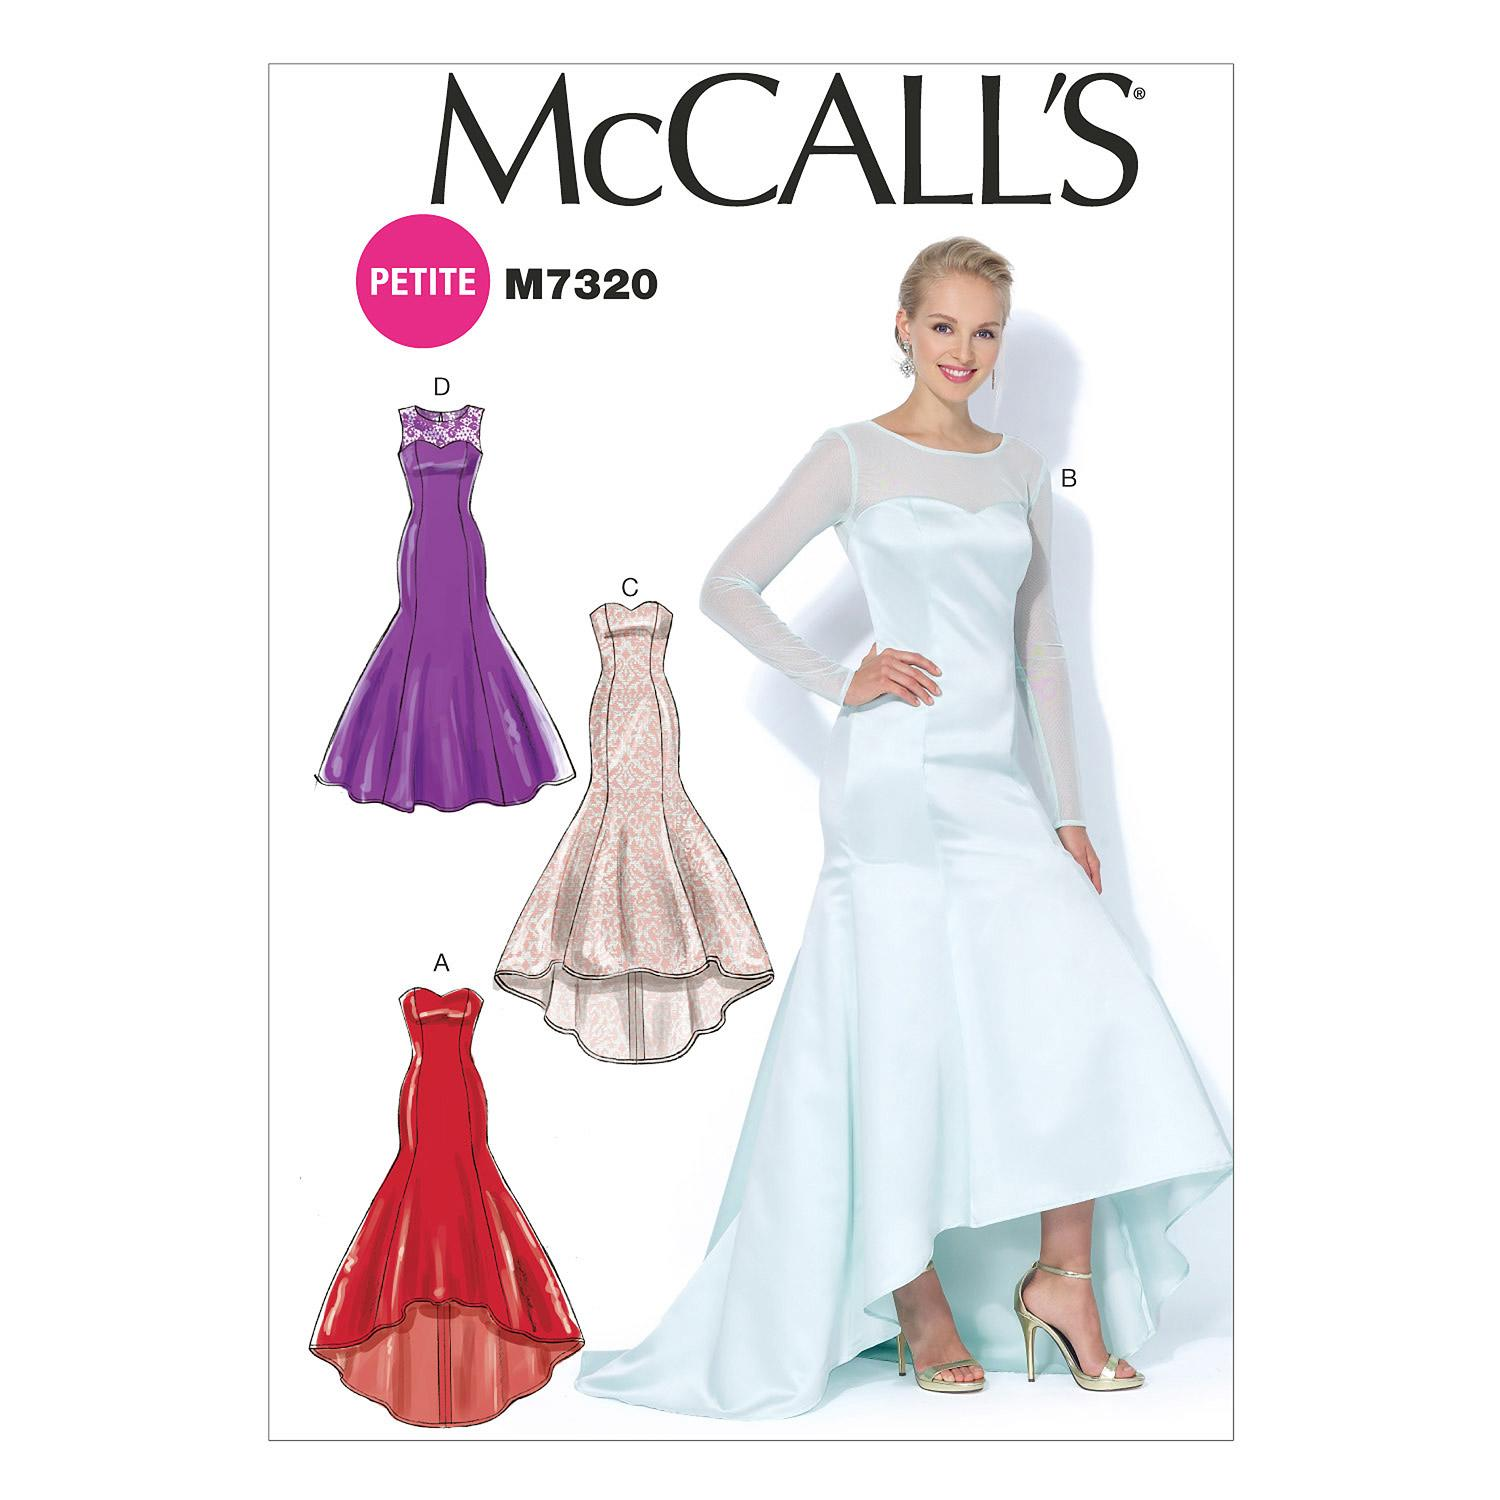 McCalls M7320 Dresses, Evening/Prom